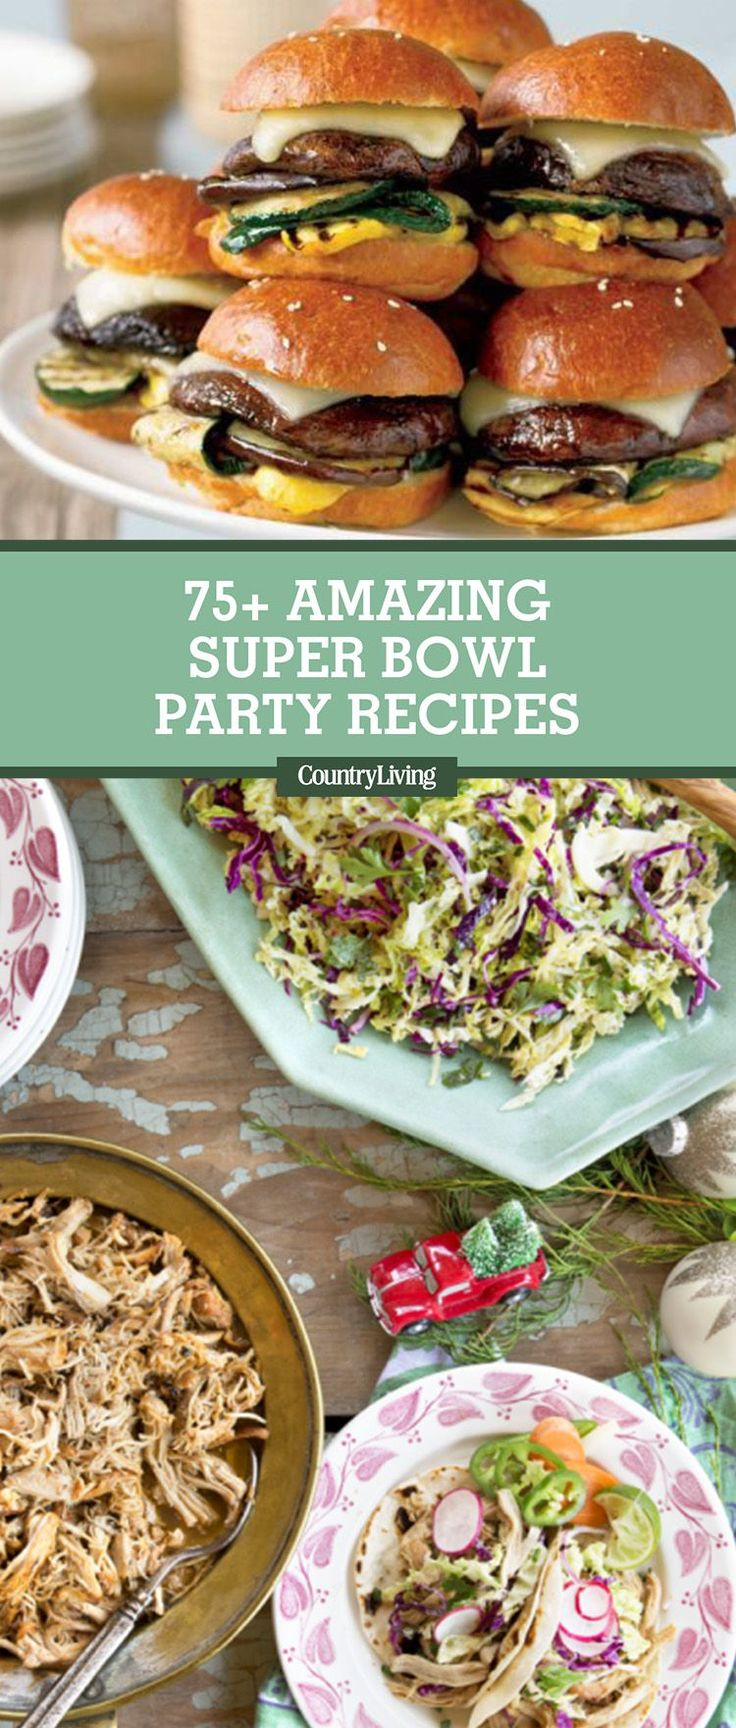 The Super Bowl is this Sunday! Get our most delicious Game Day recipes and food ideas for Super Bowl Sunday